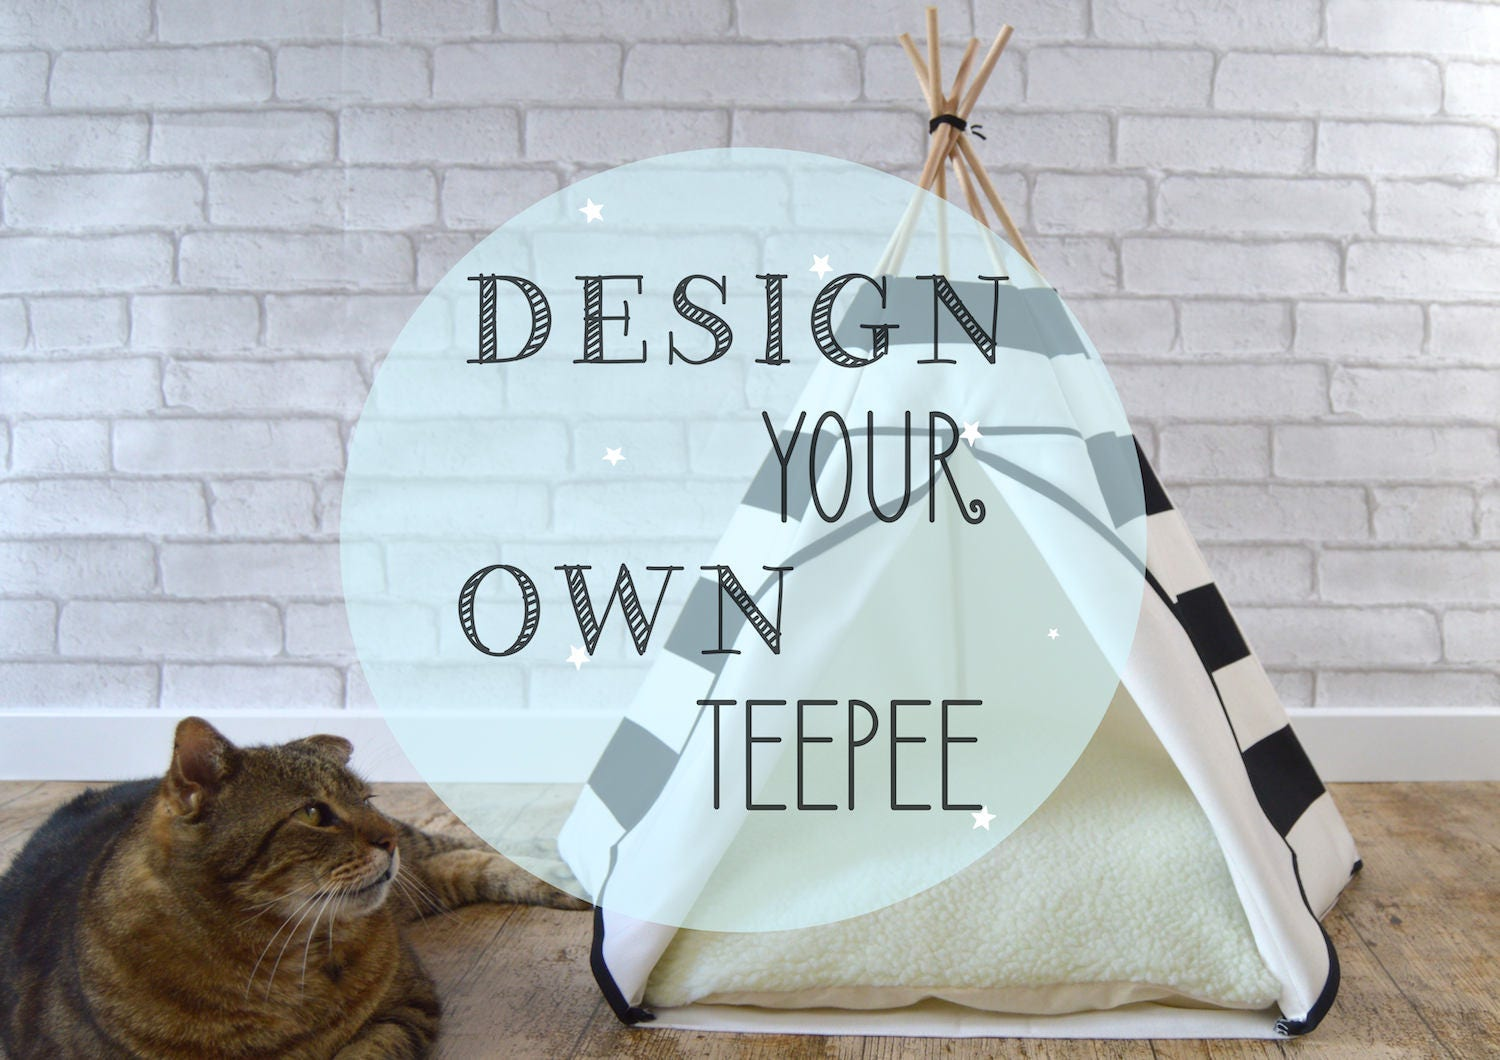 Dog crib for sale philippines - Cat Bed Cat Teepee Dog Teepee Design Your Own Teepee